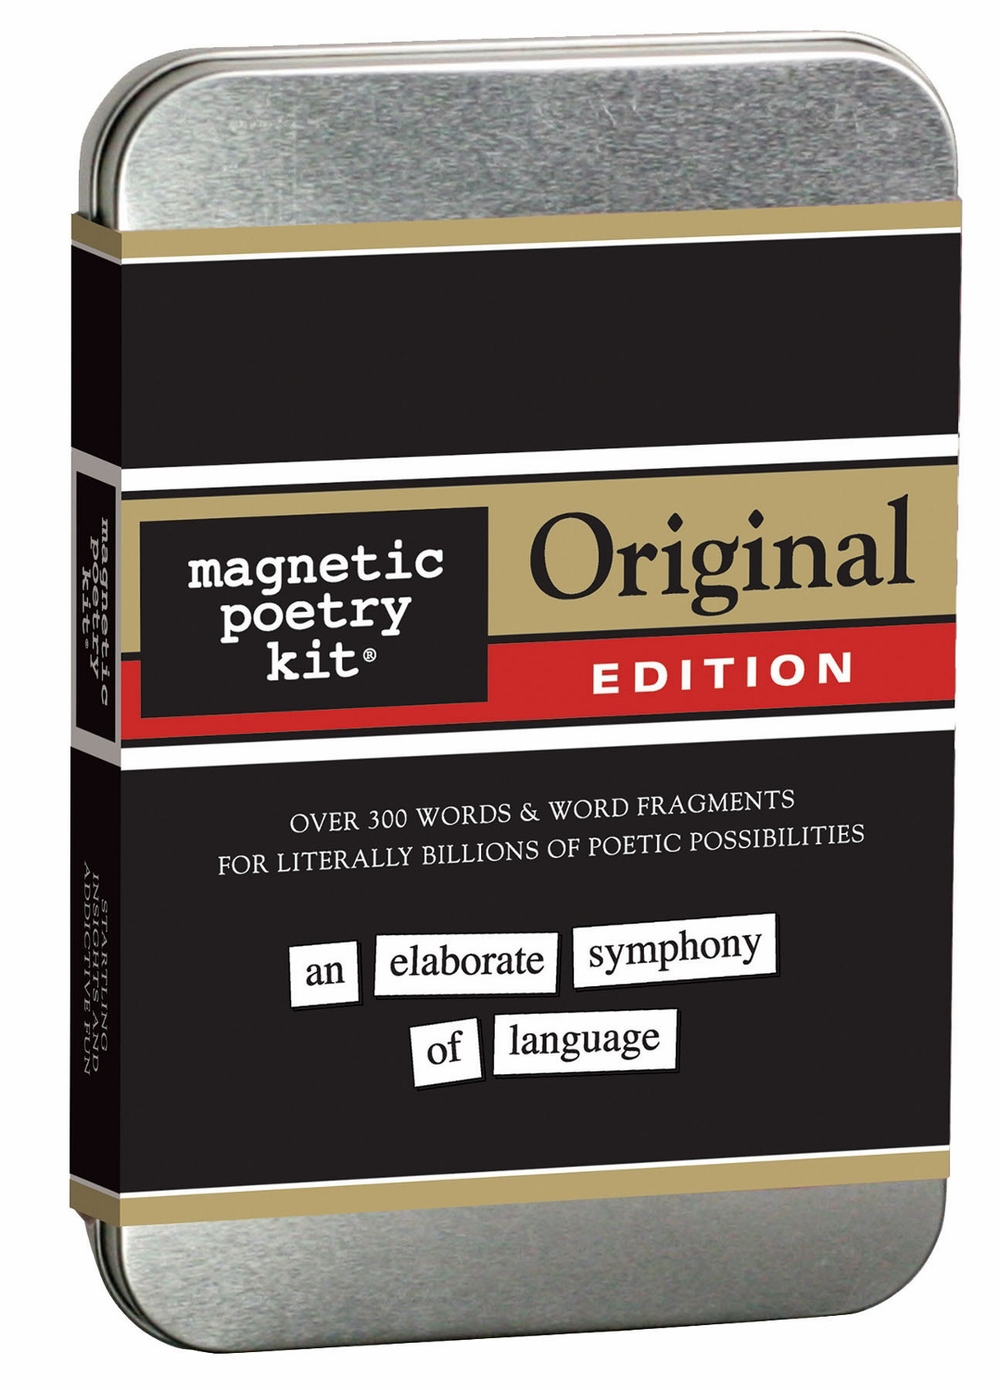 Magentic Poetry Kit $19.99, themed sets available $7.99 - $12.99